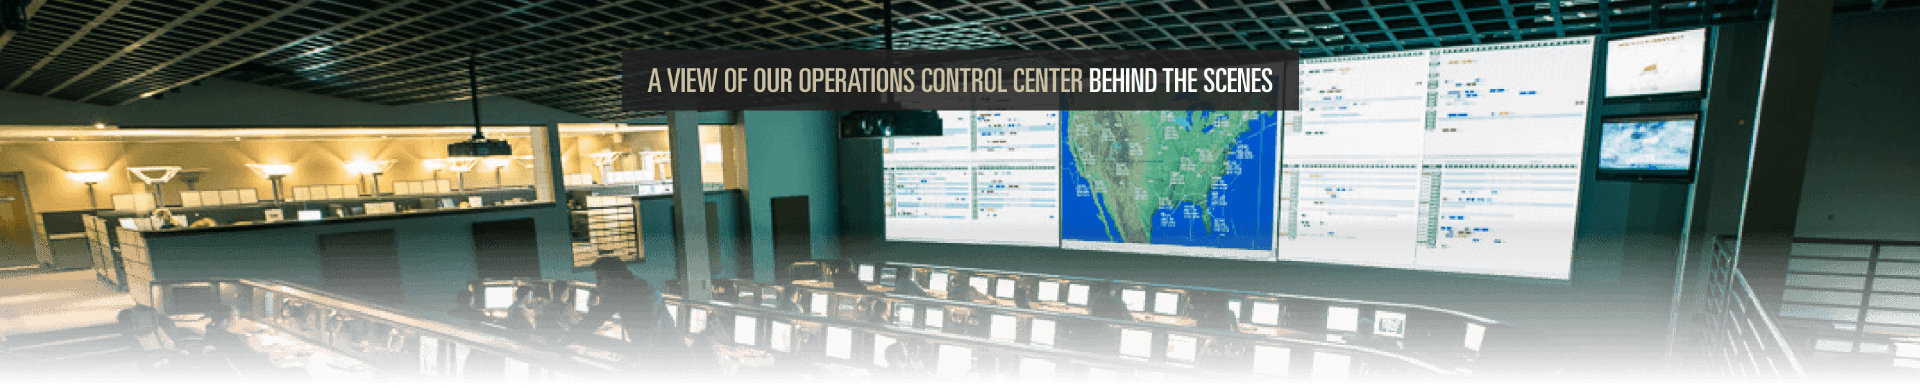 Tour Flight Options state-of-the-art Operations Center